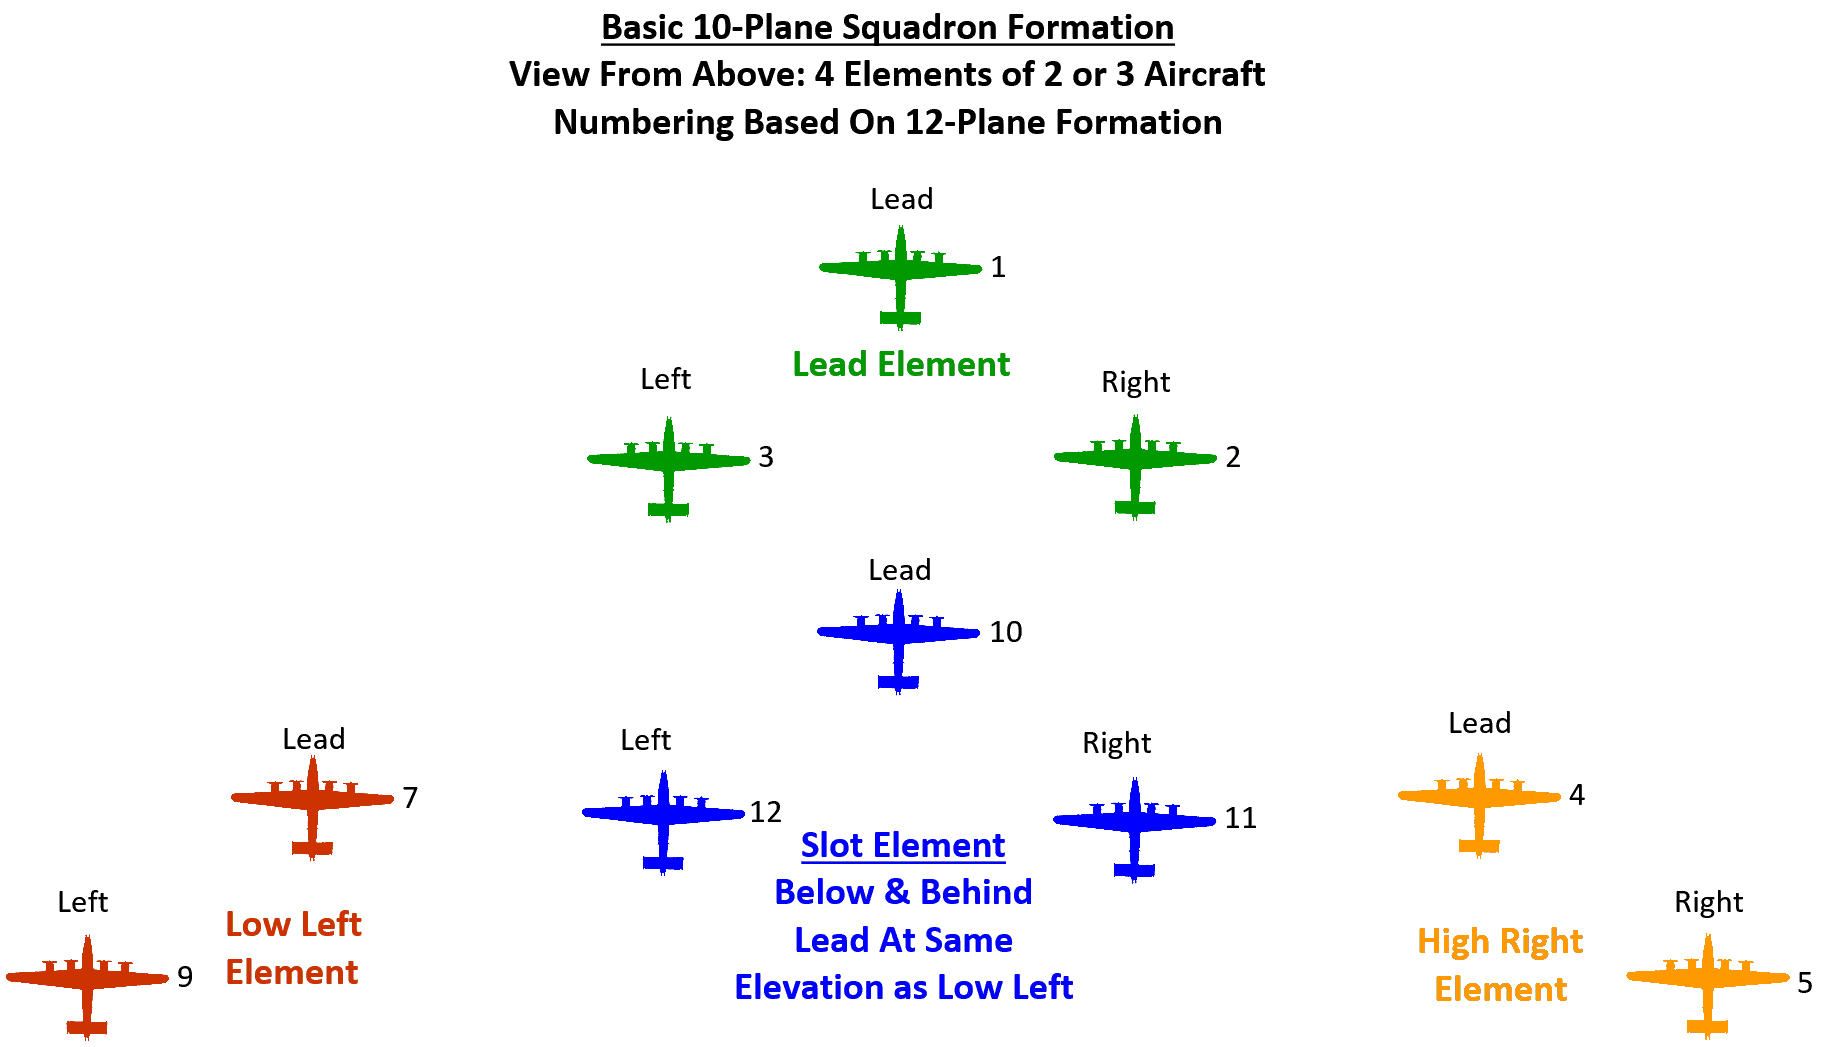 Formation - element positions